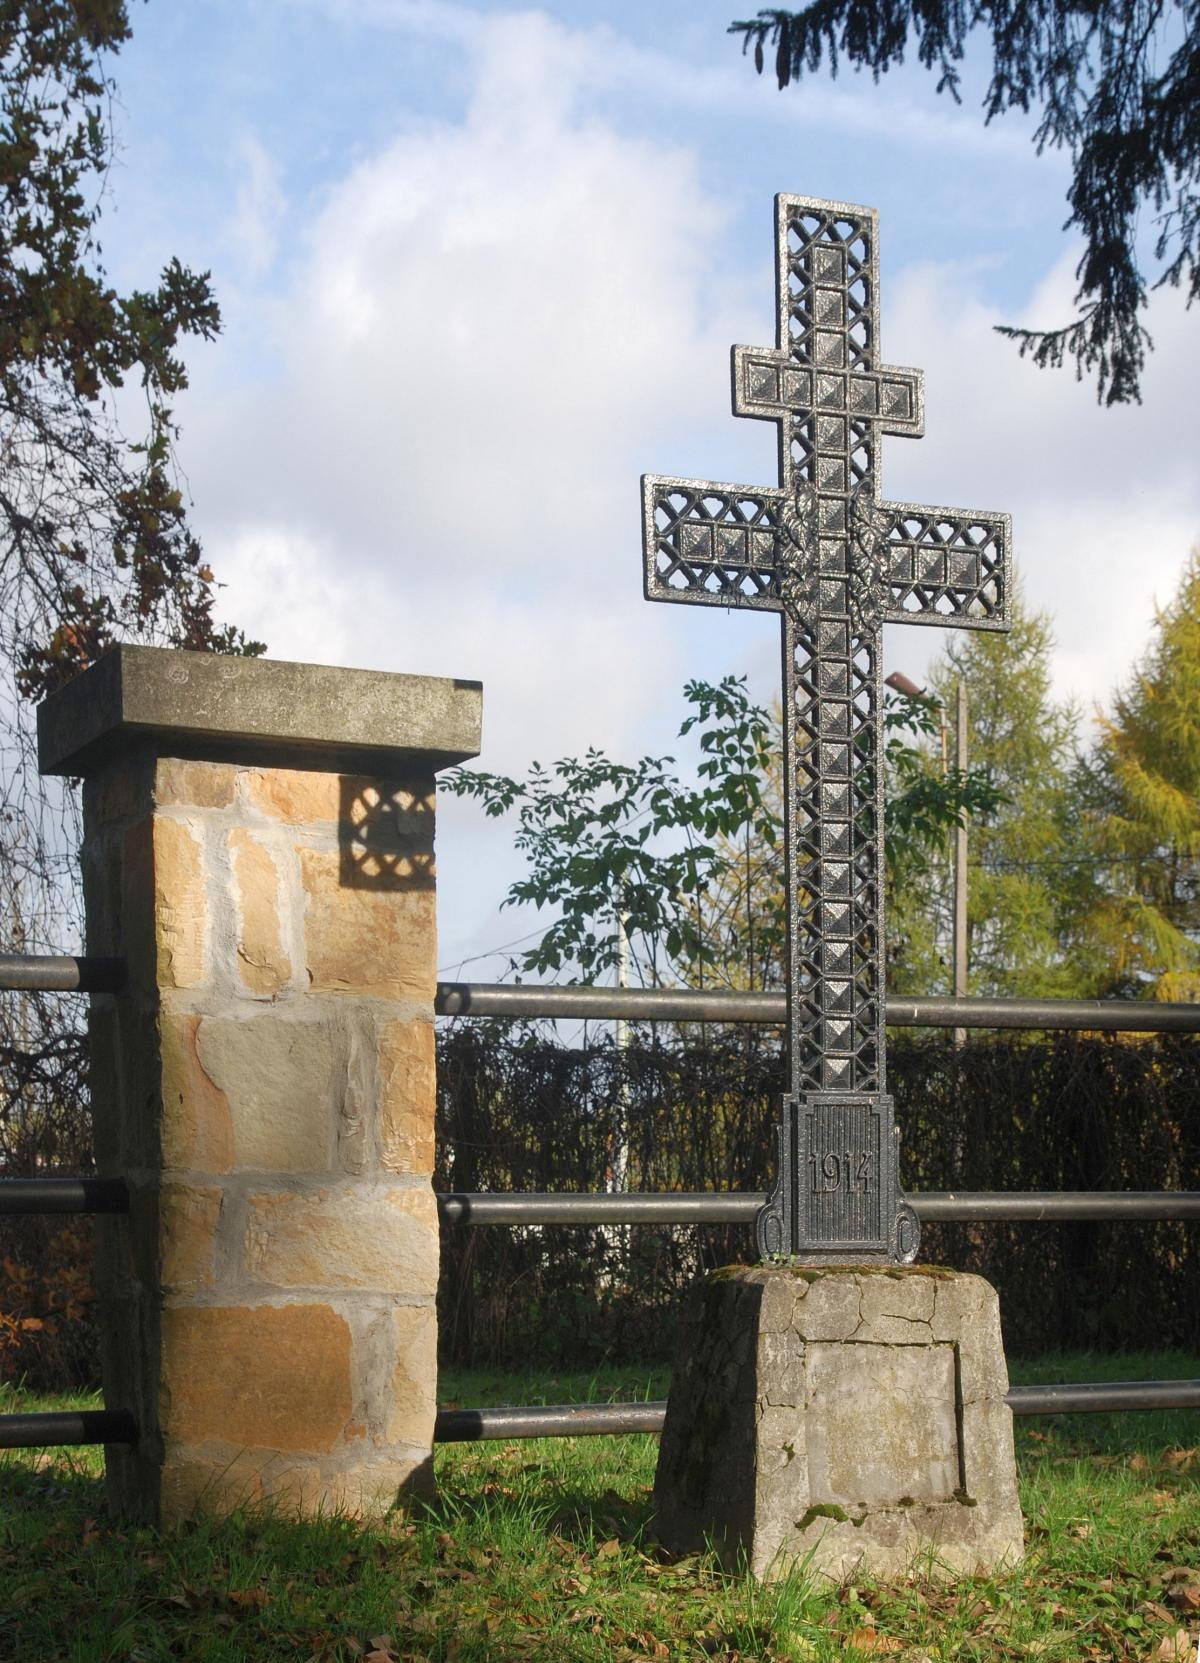 Wikipedia, Self-published work, World War I Cemetery nr 16 in Osobnica